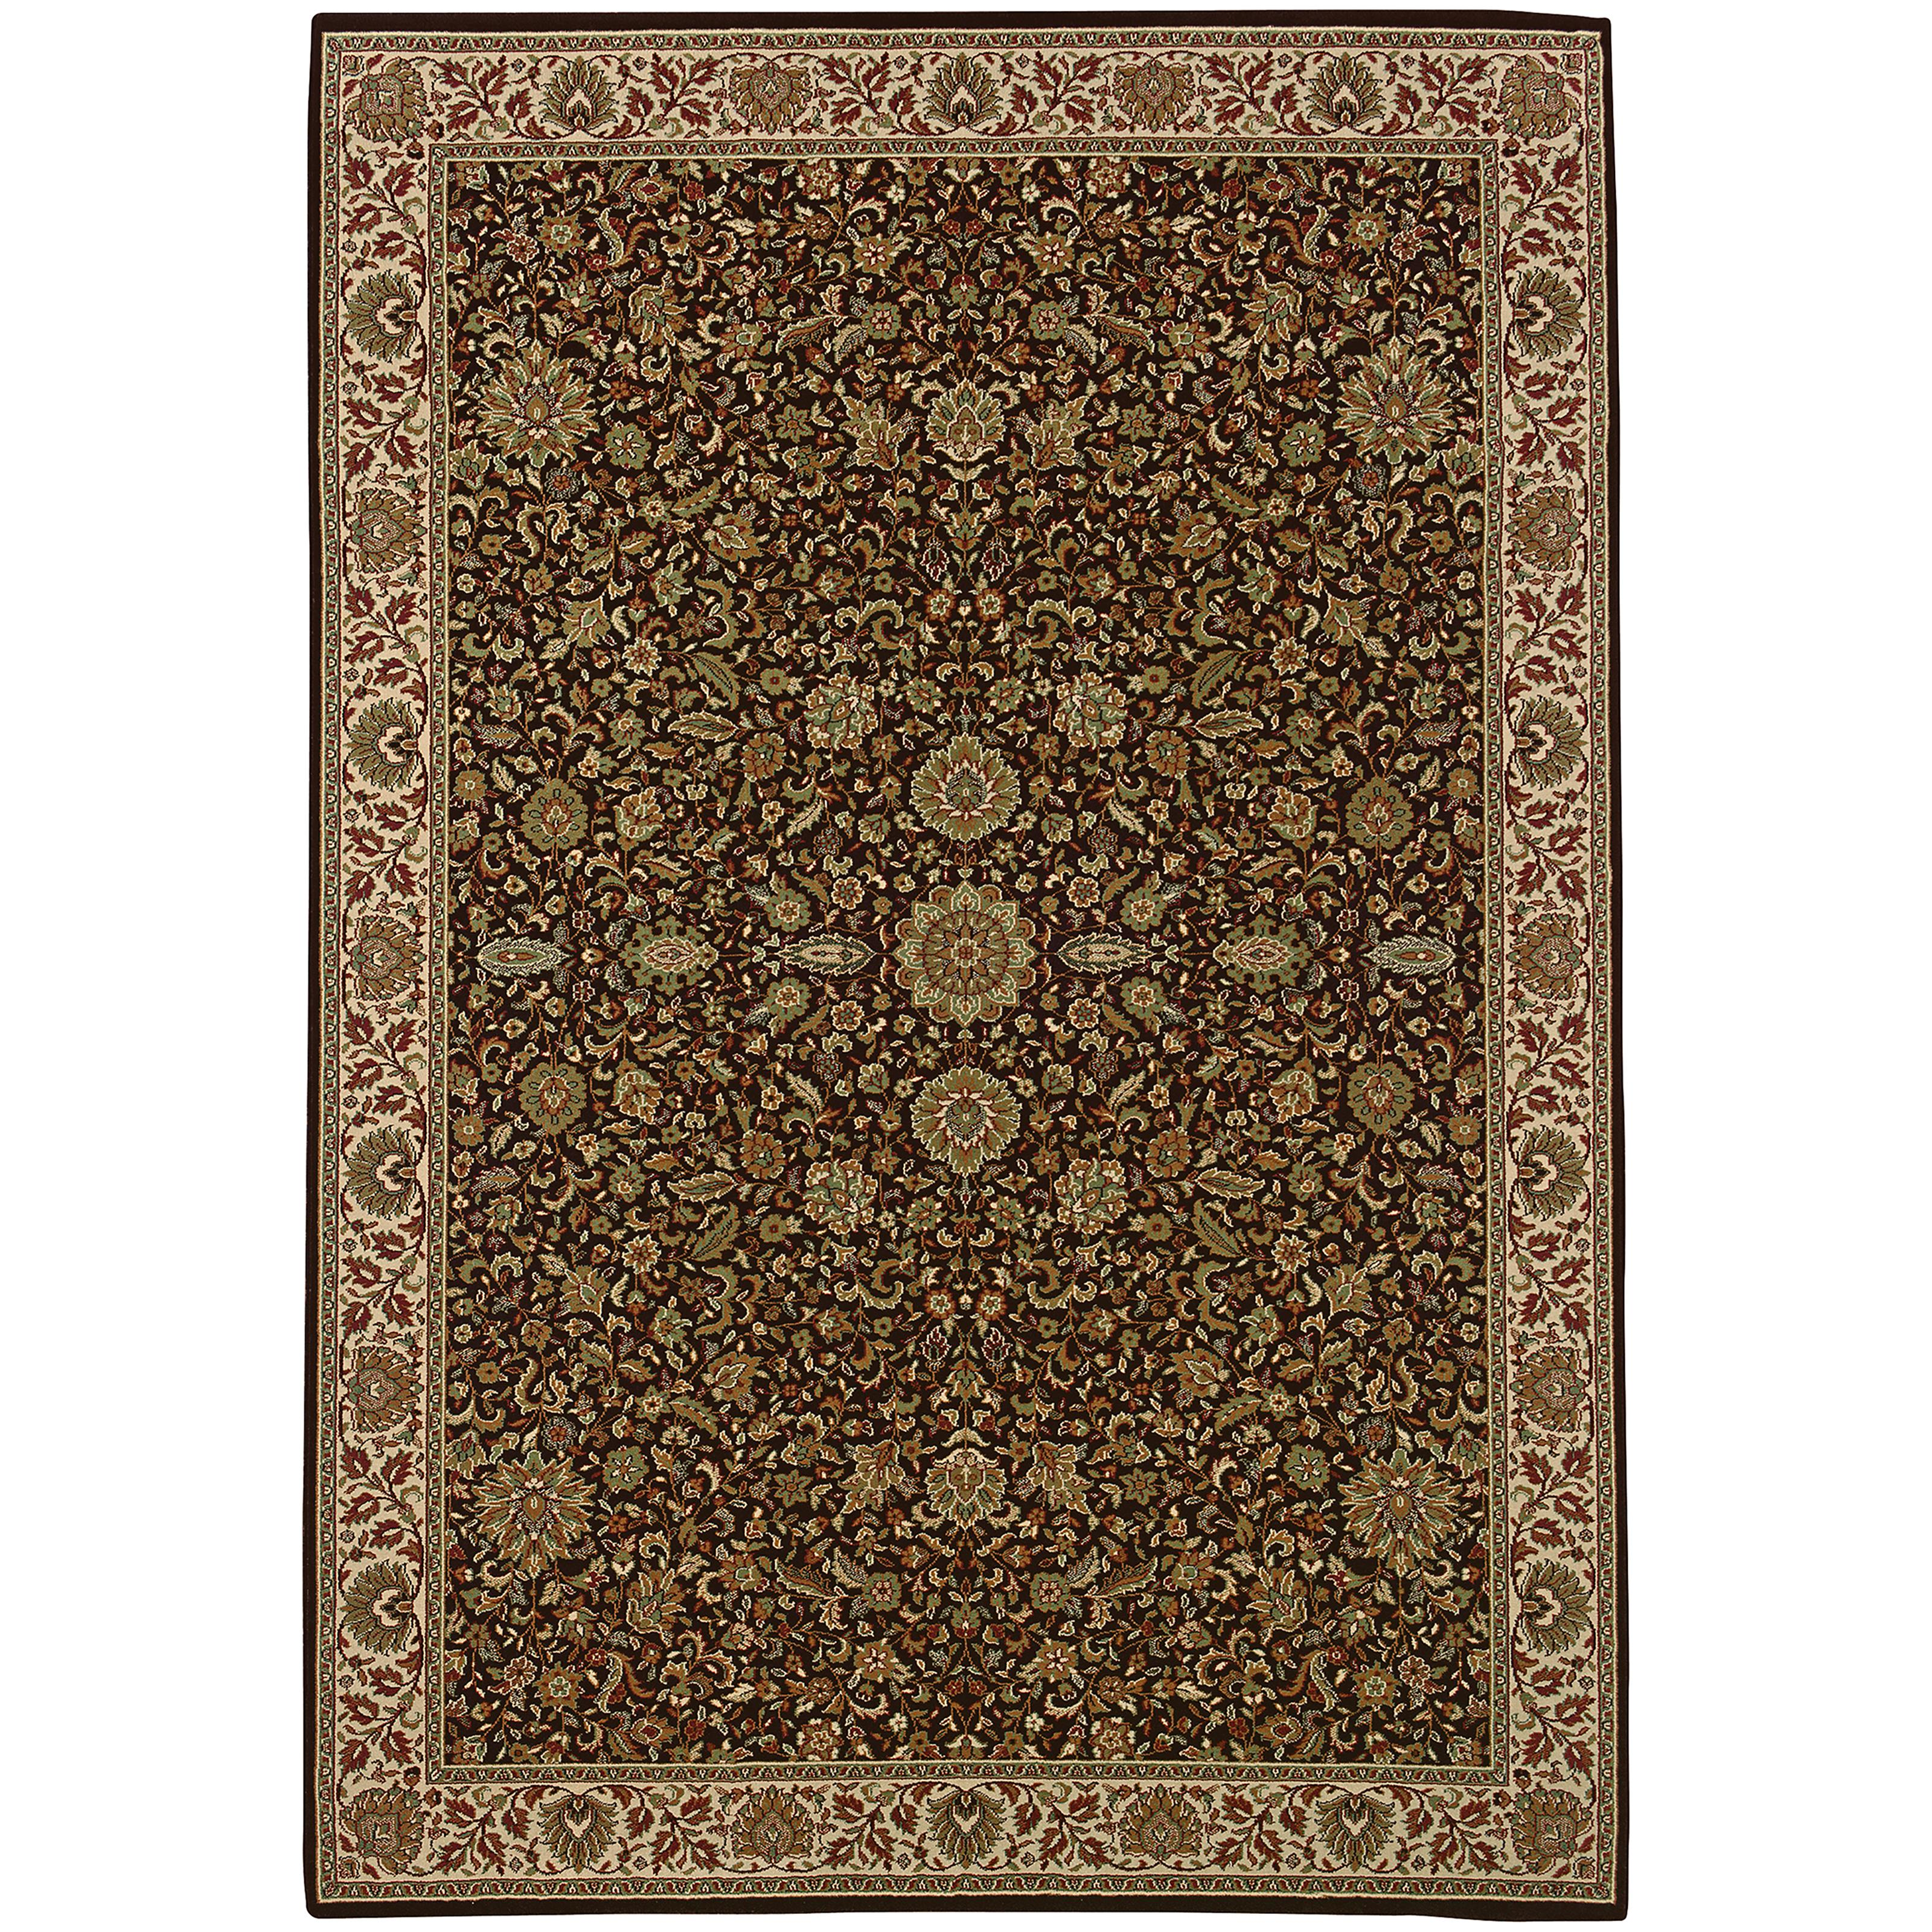 Oriental Weavers Ariana 12' X 15' Rug - Item Number: A172D2360450ST